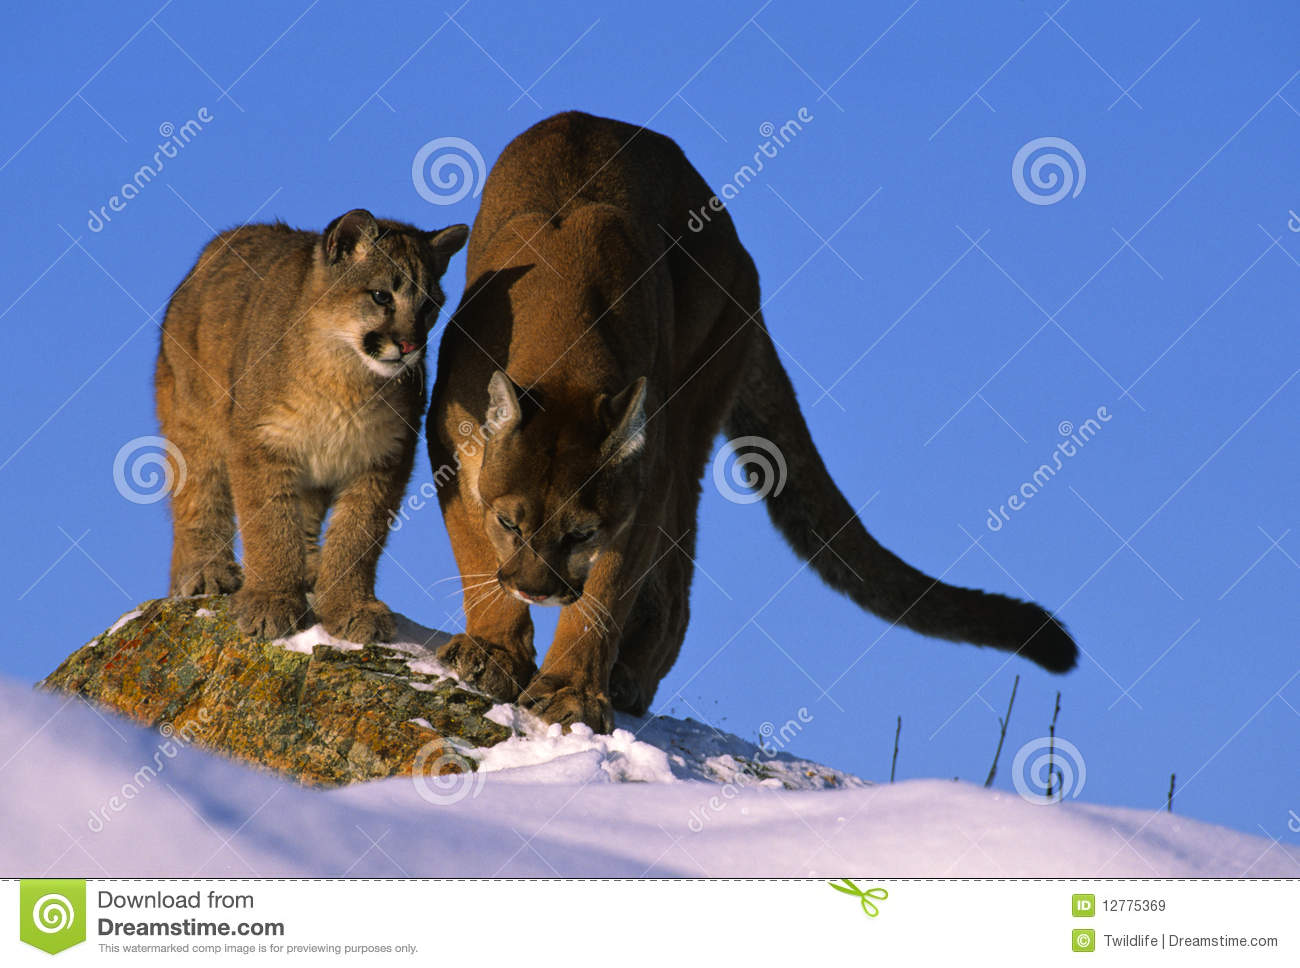 Cougar Teaching Her Cub How to Hunt